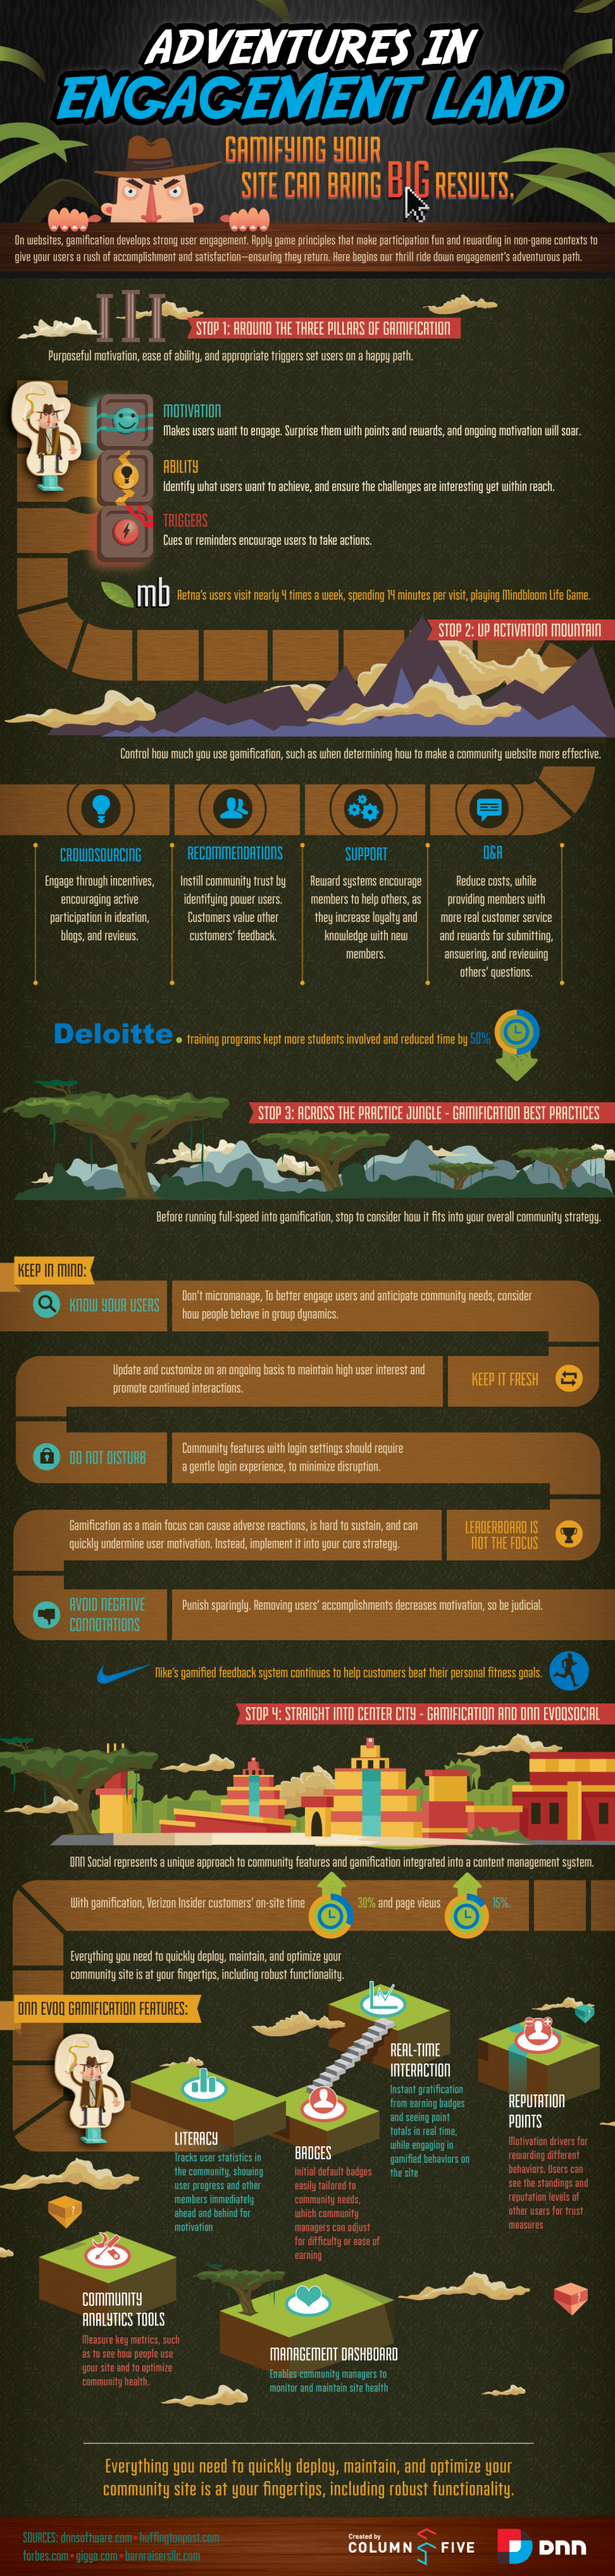 Adventures in Engagement Land Infographic